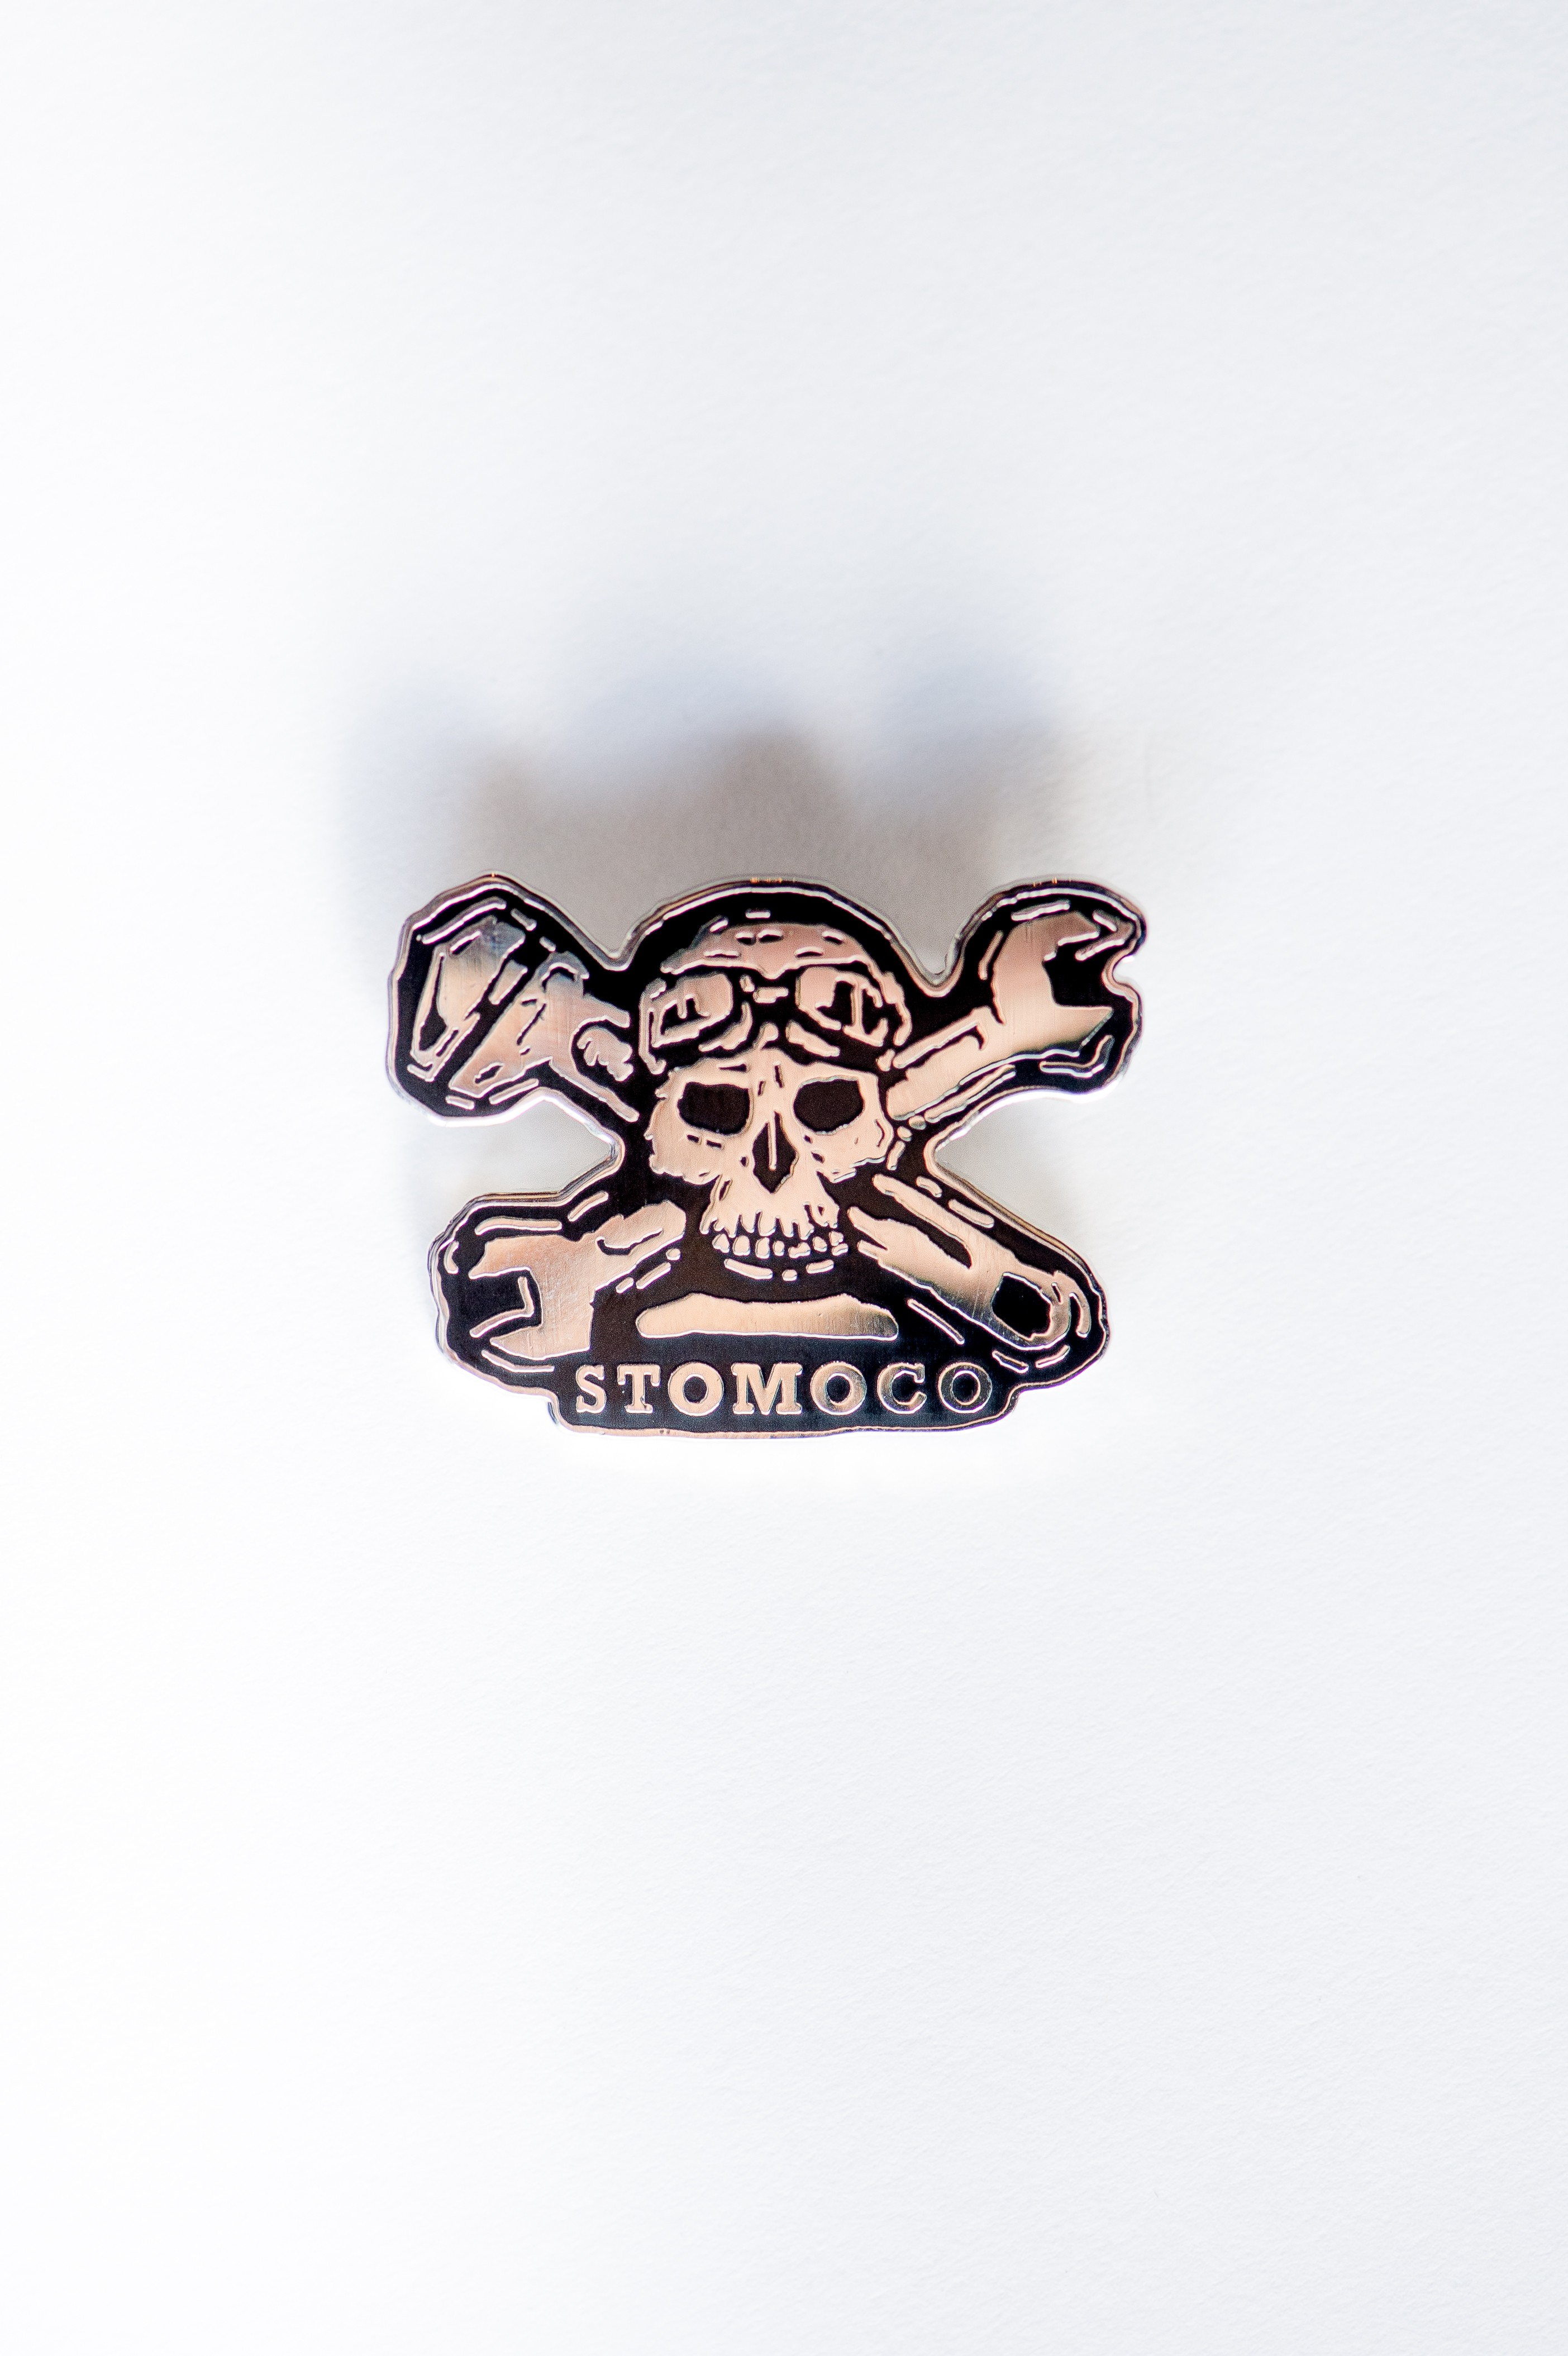 Stomoco Pin